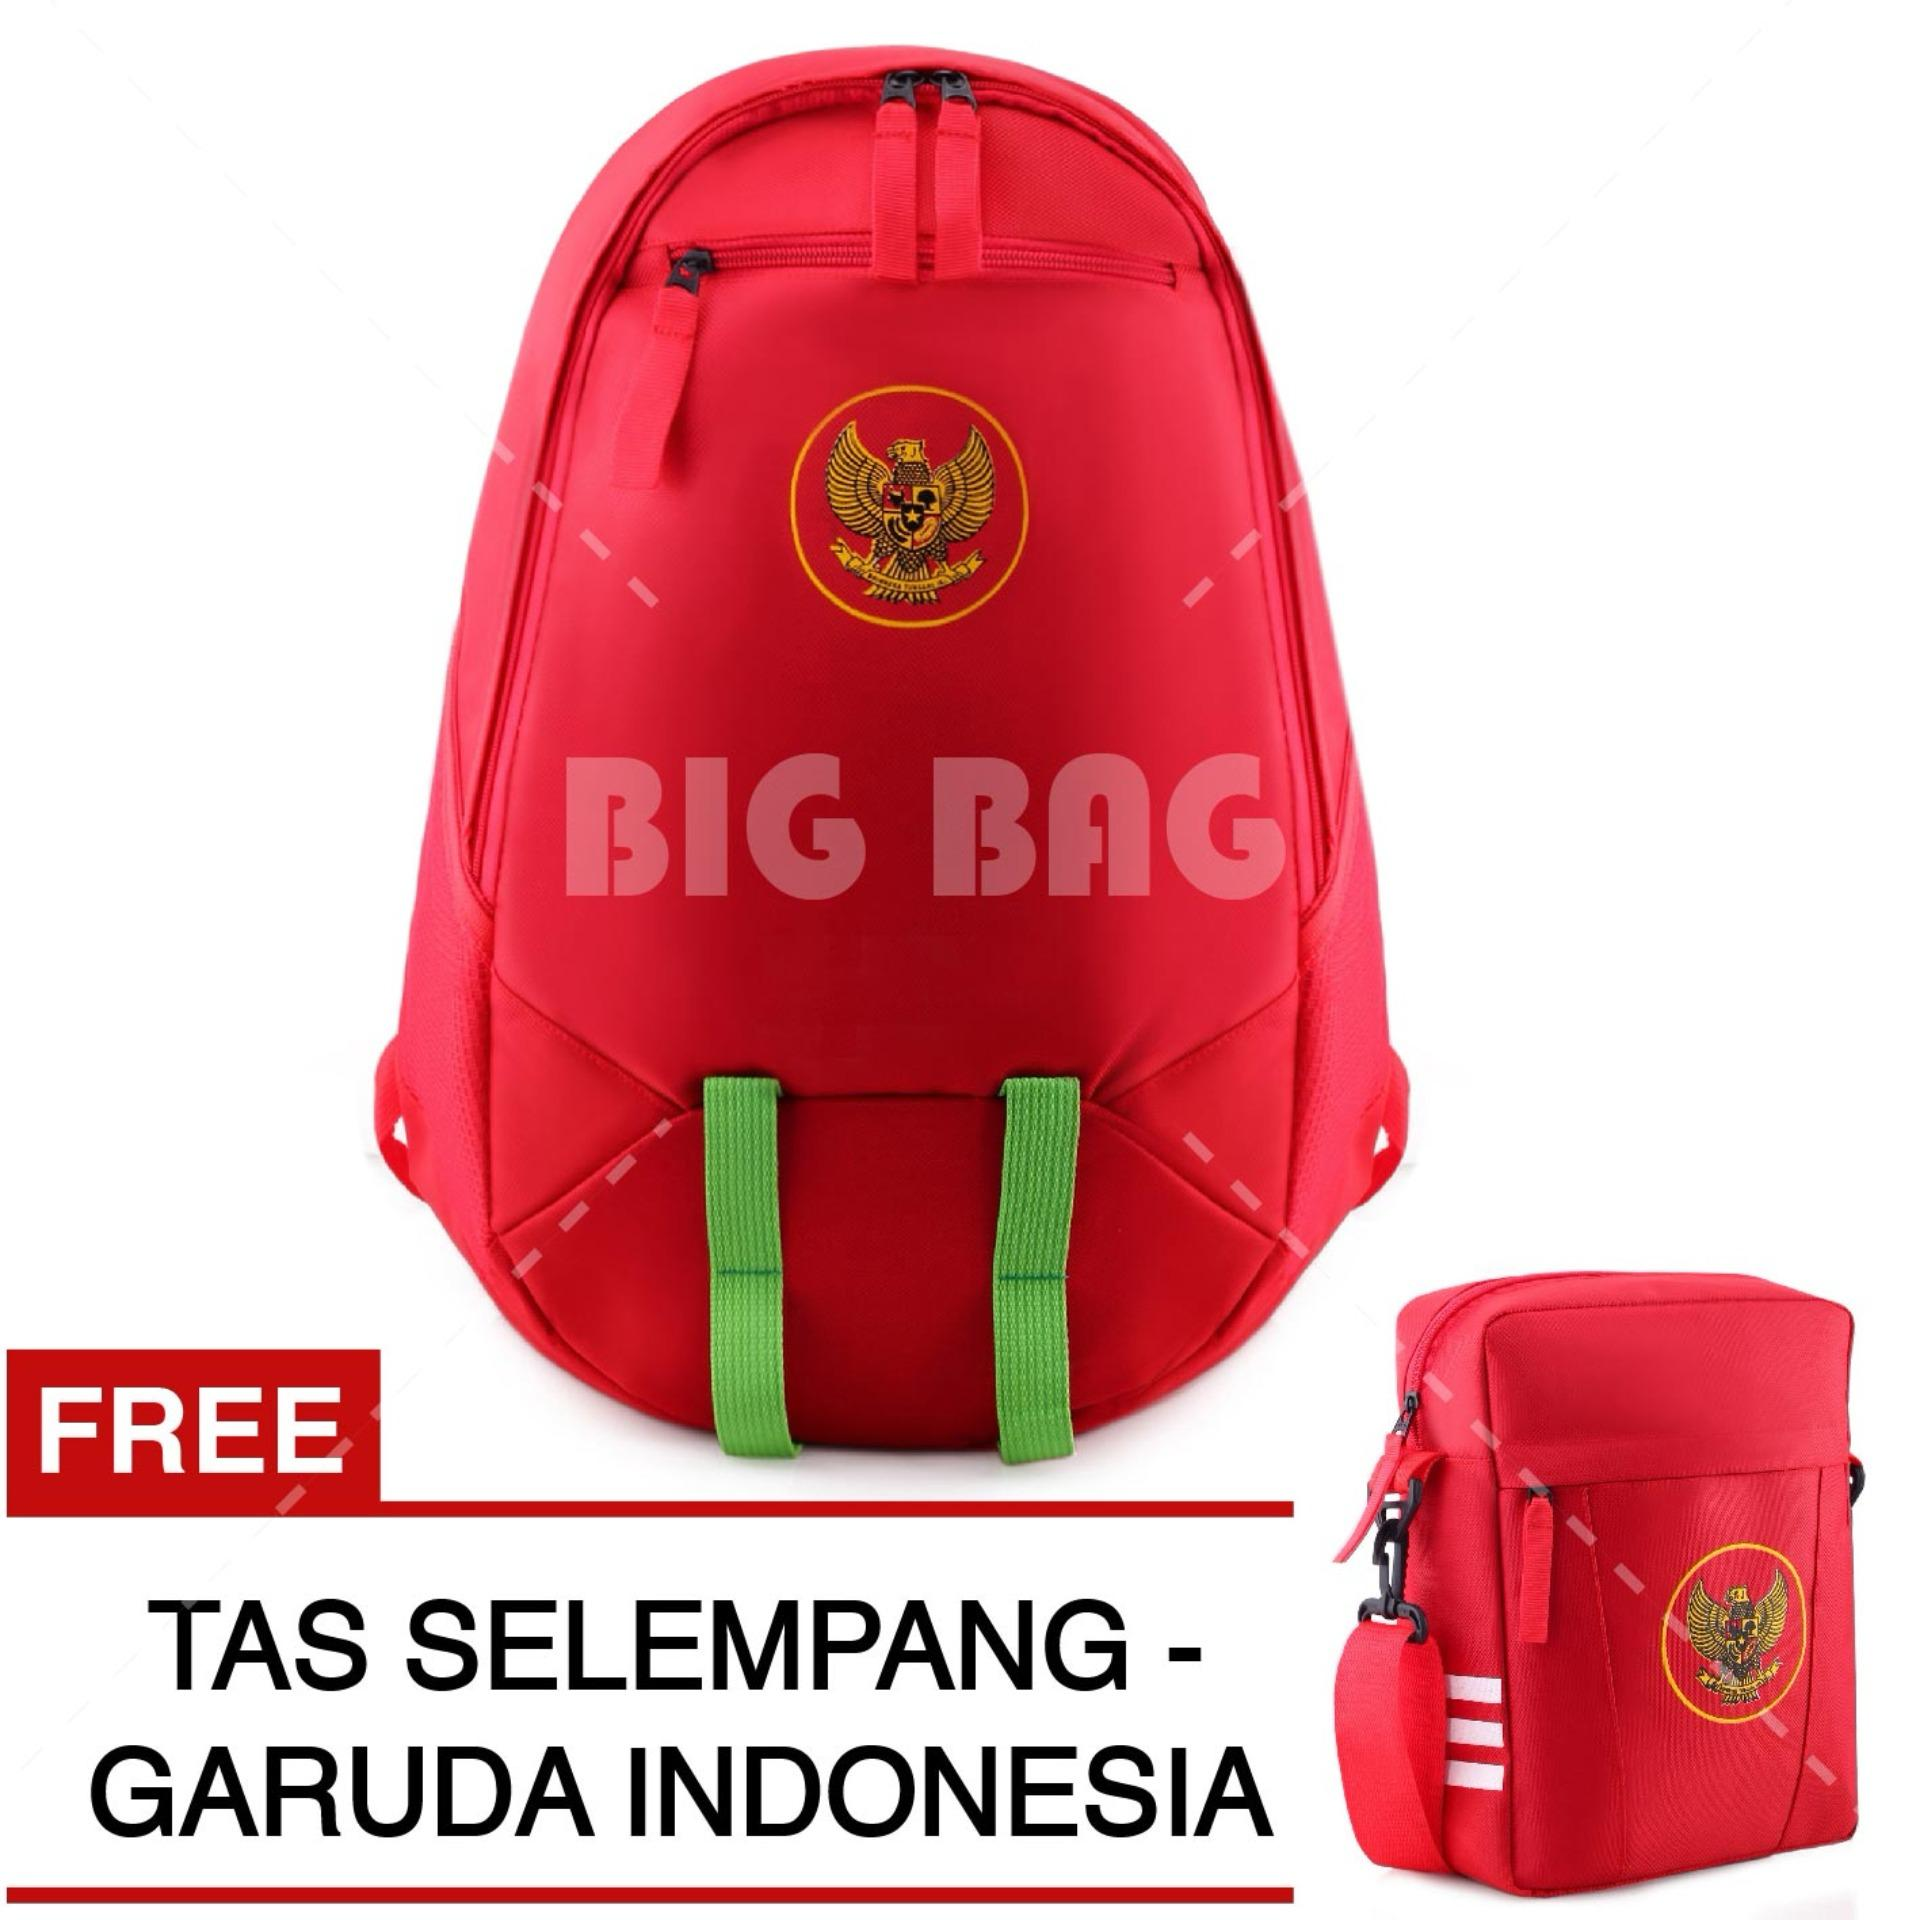 Harga Tas Ransel Bola Pria Garuda Indonesia Laptop Backpack Men Soccer Editions Red Free Tas Selempang Garuda Indonesia Red Fullset Murah